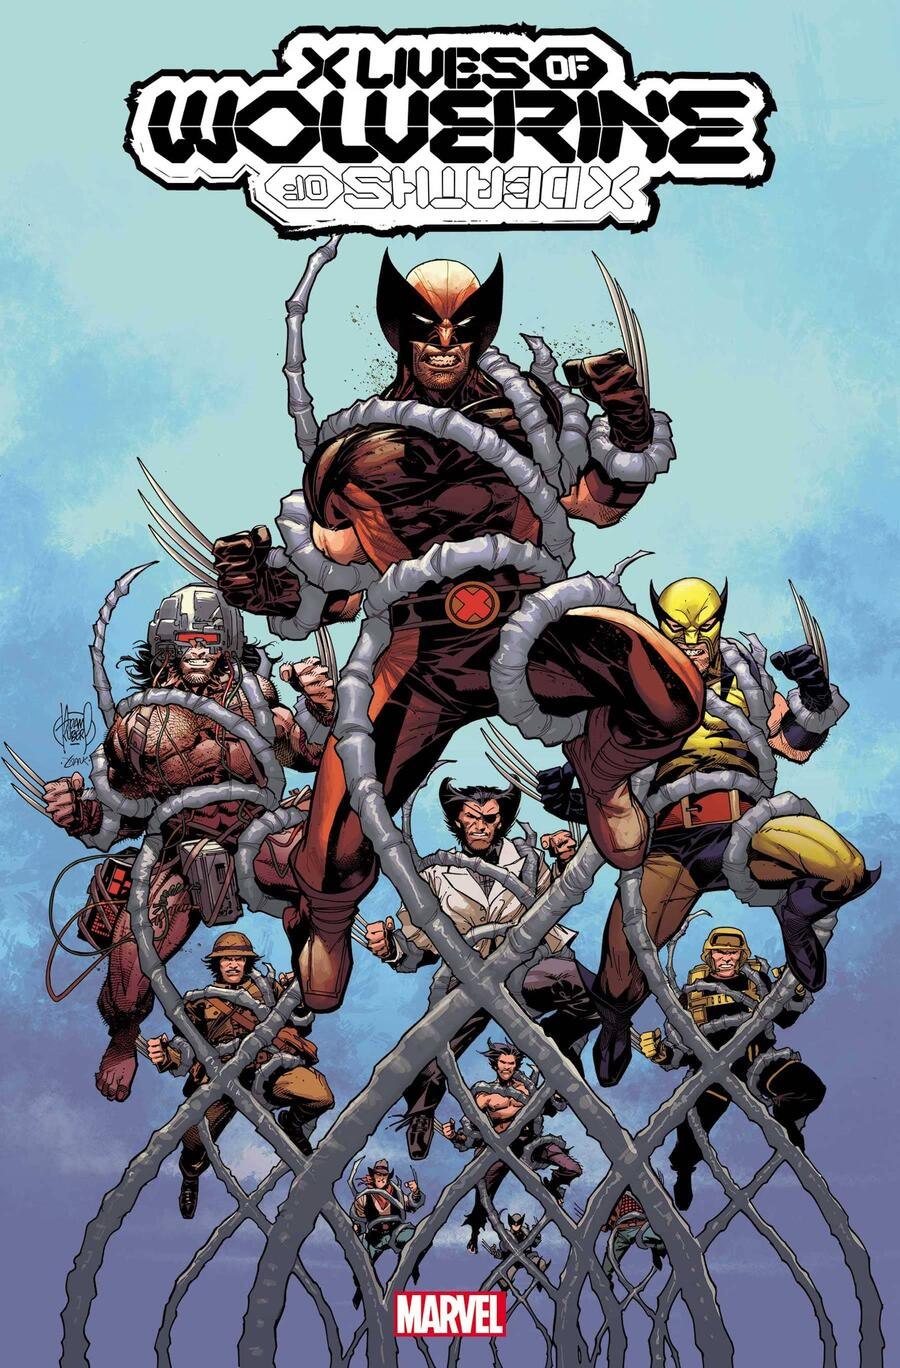 X LIVES OF WOLVERINE #1 cover by Adam Kubert